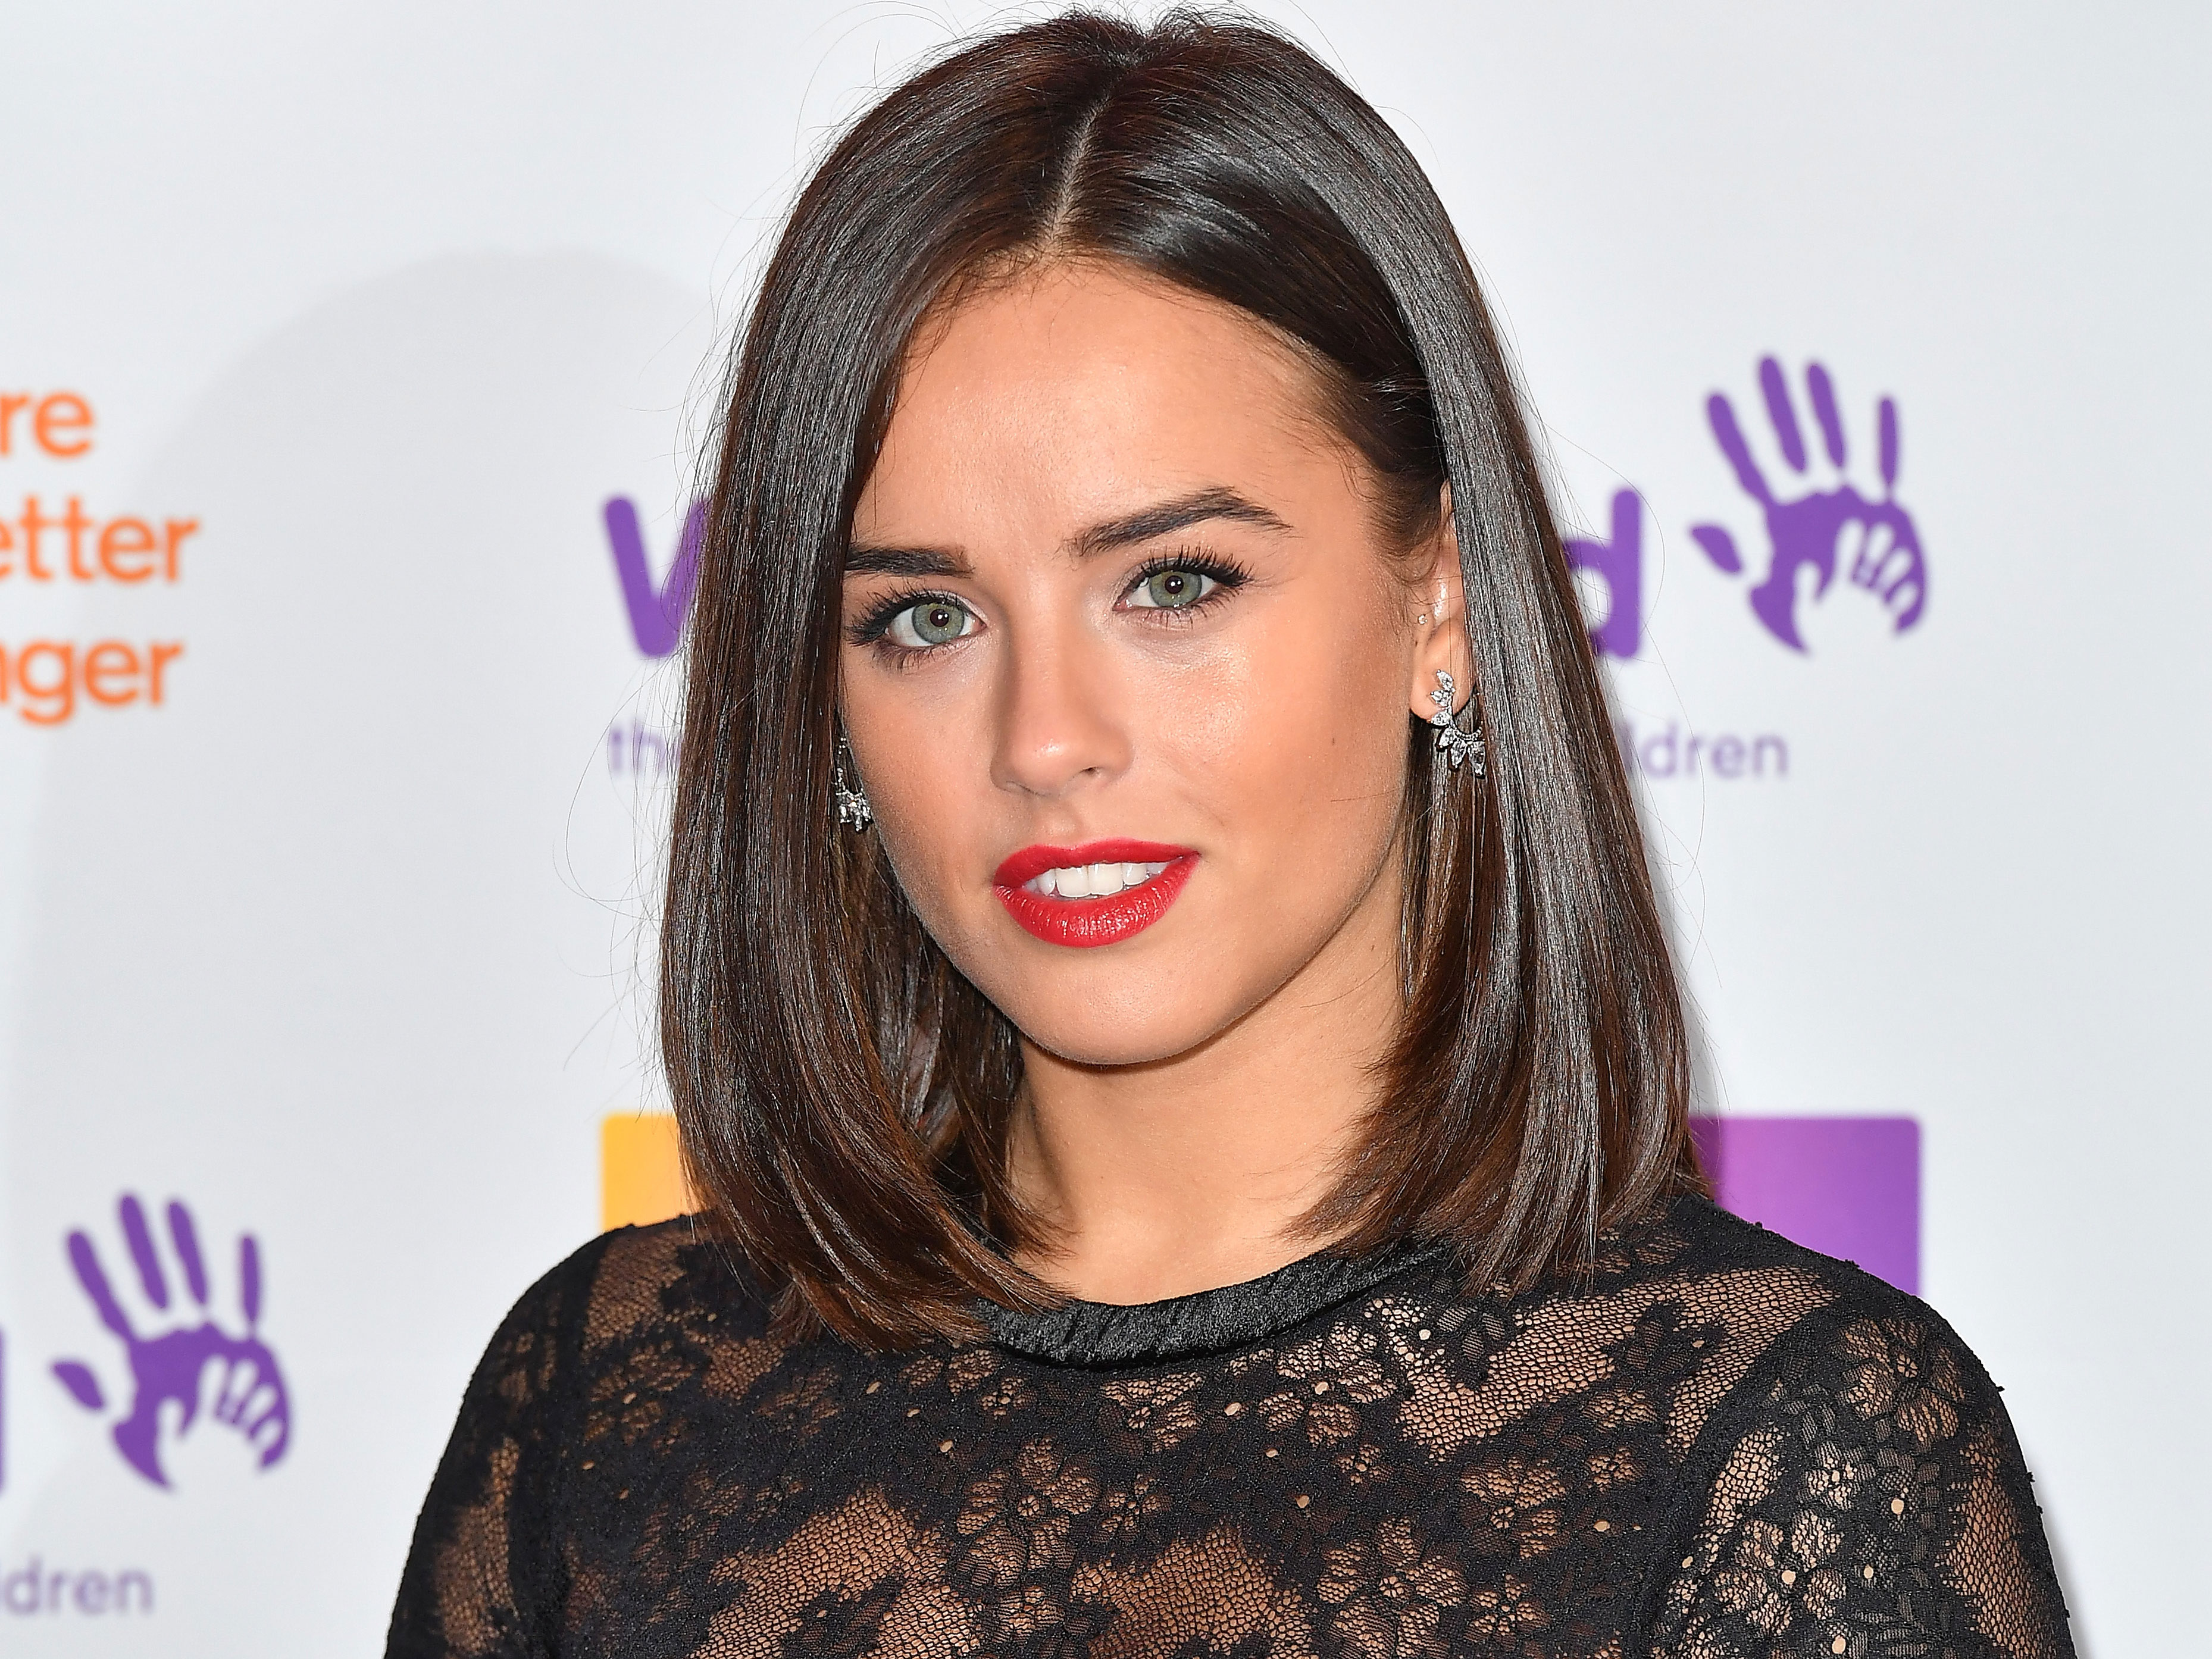 Corrie's Georgia May Foote opens up about 'awful' break up from 'abusive relationship' that left her depressed, lonely and suffering from panic attacks